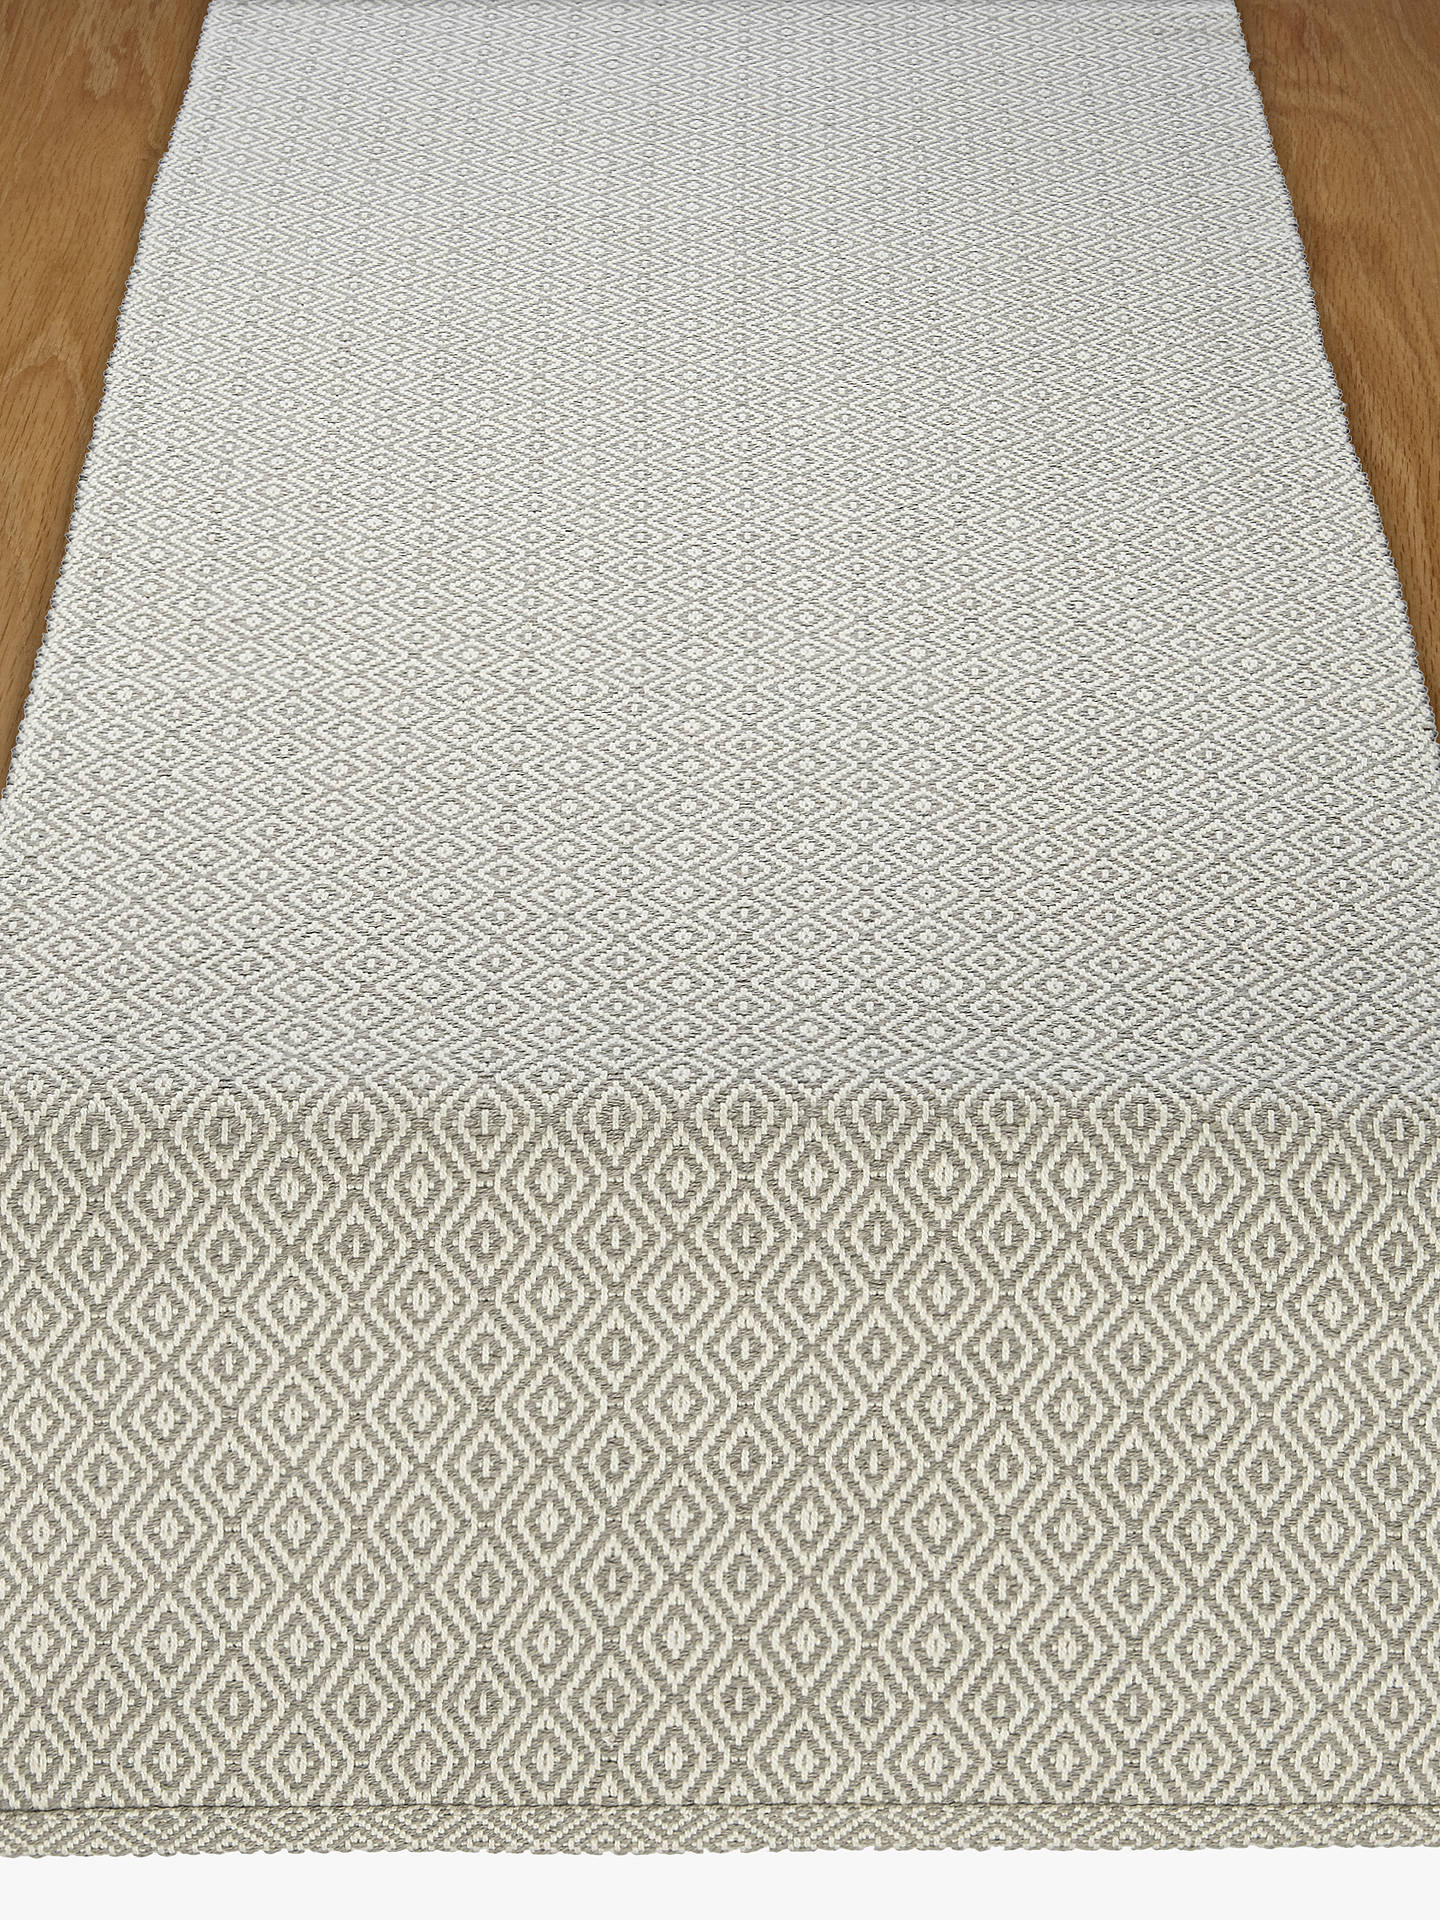 BuyJohn Lewis & Partners Fusion Table Runner, Putty/White Online at johnlewis.com